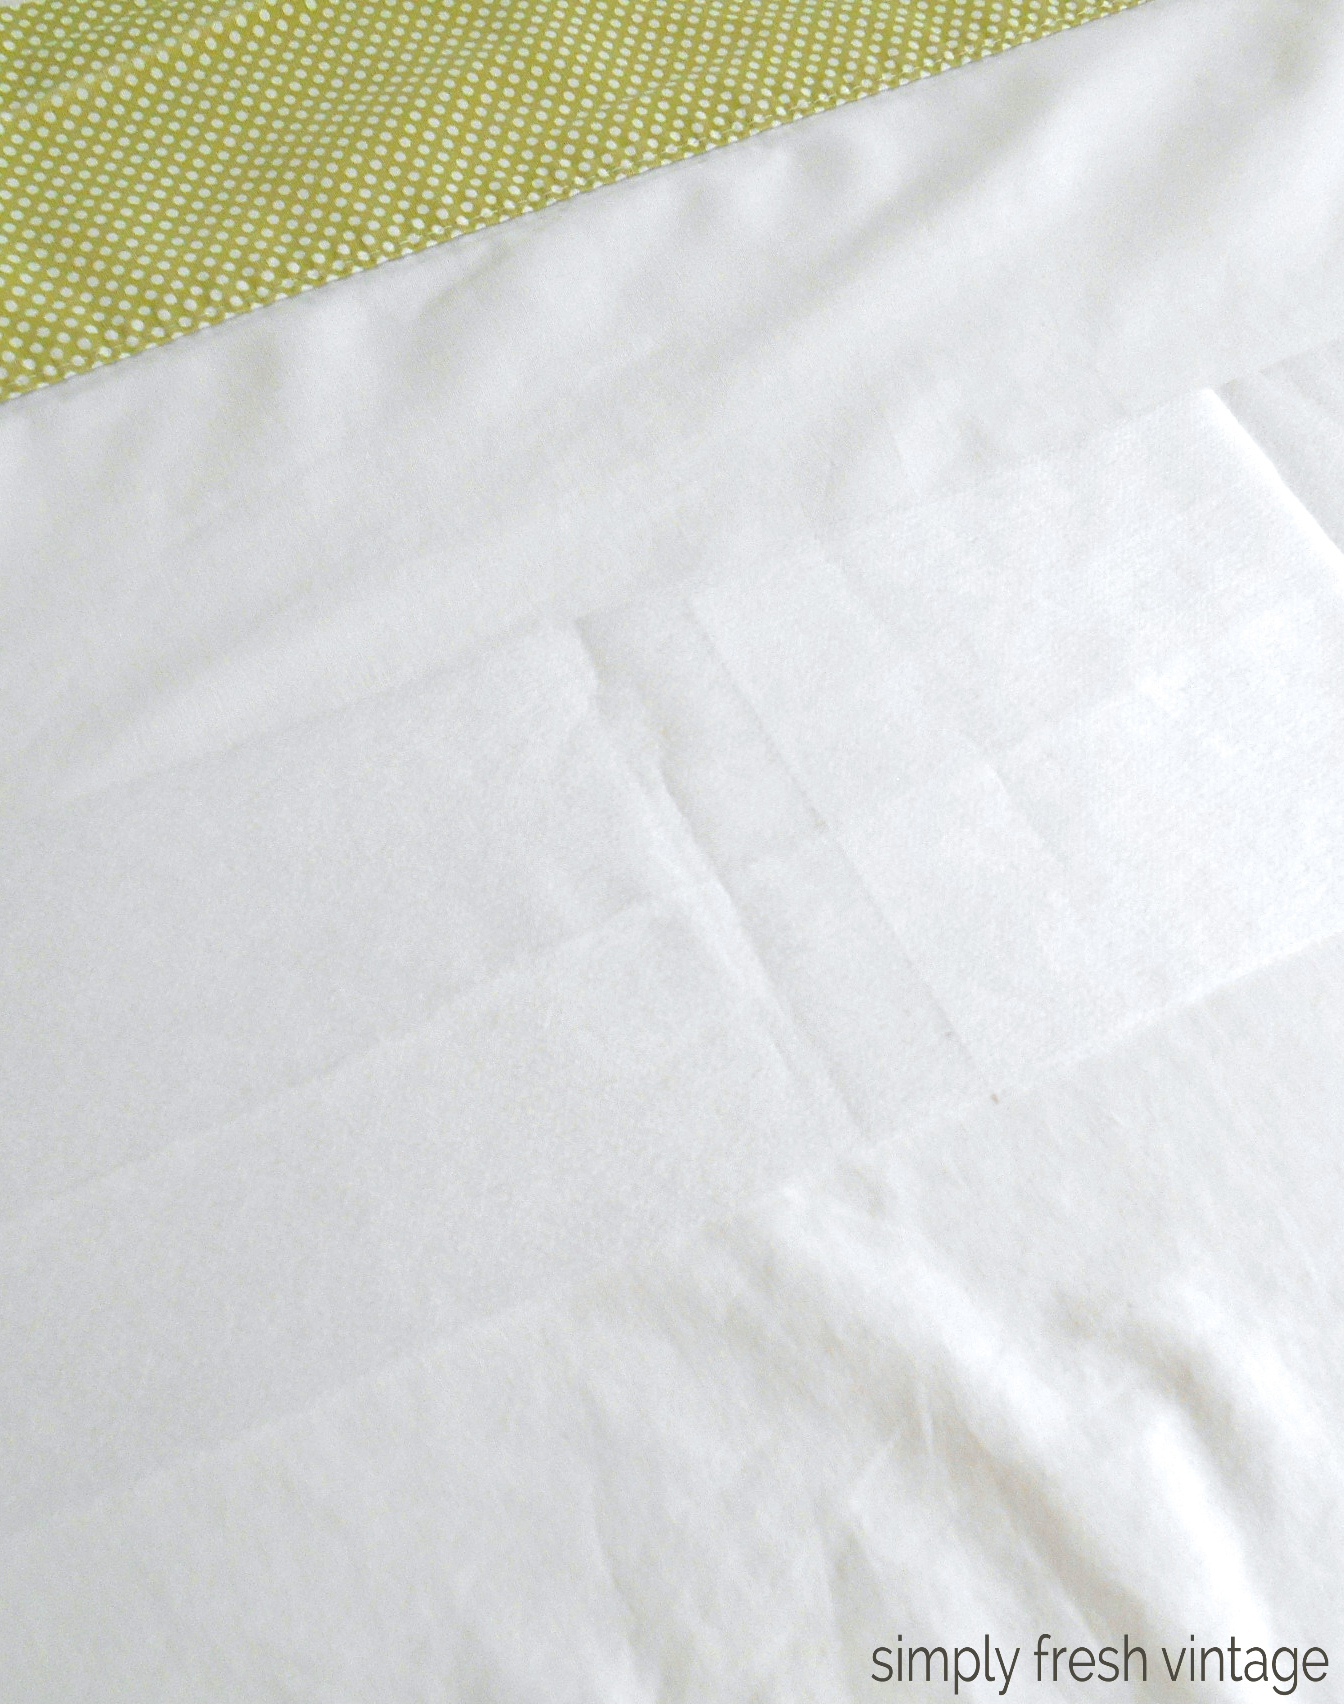 How to Repair a Torn Sheet | SimplyFreshVintage.com